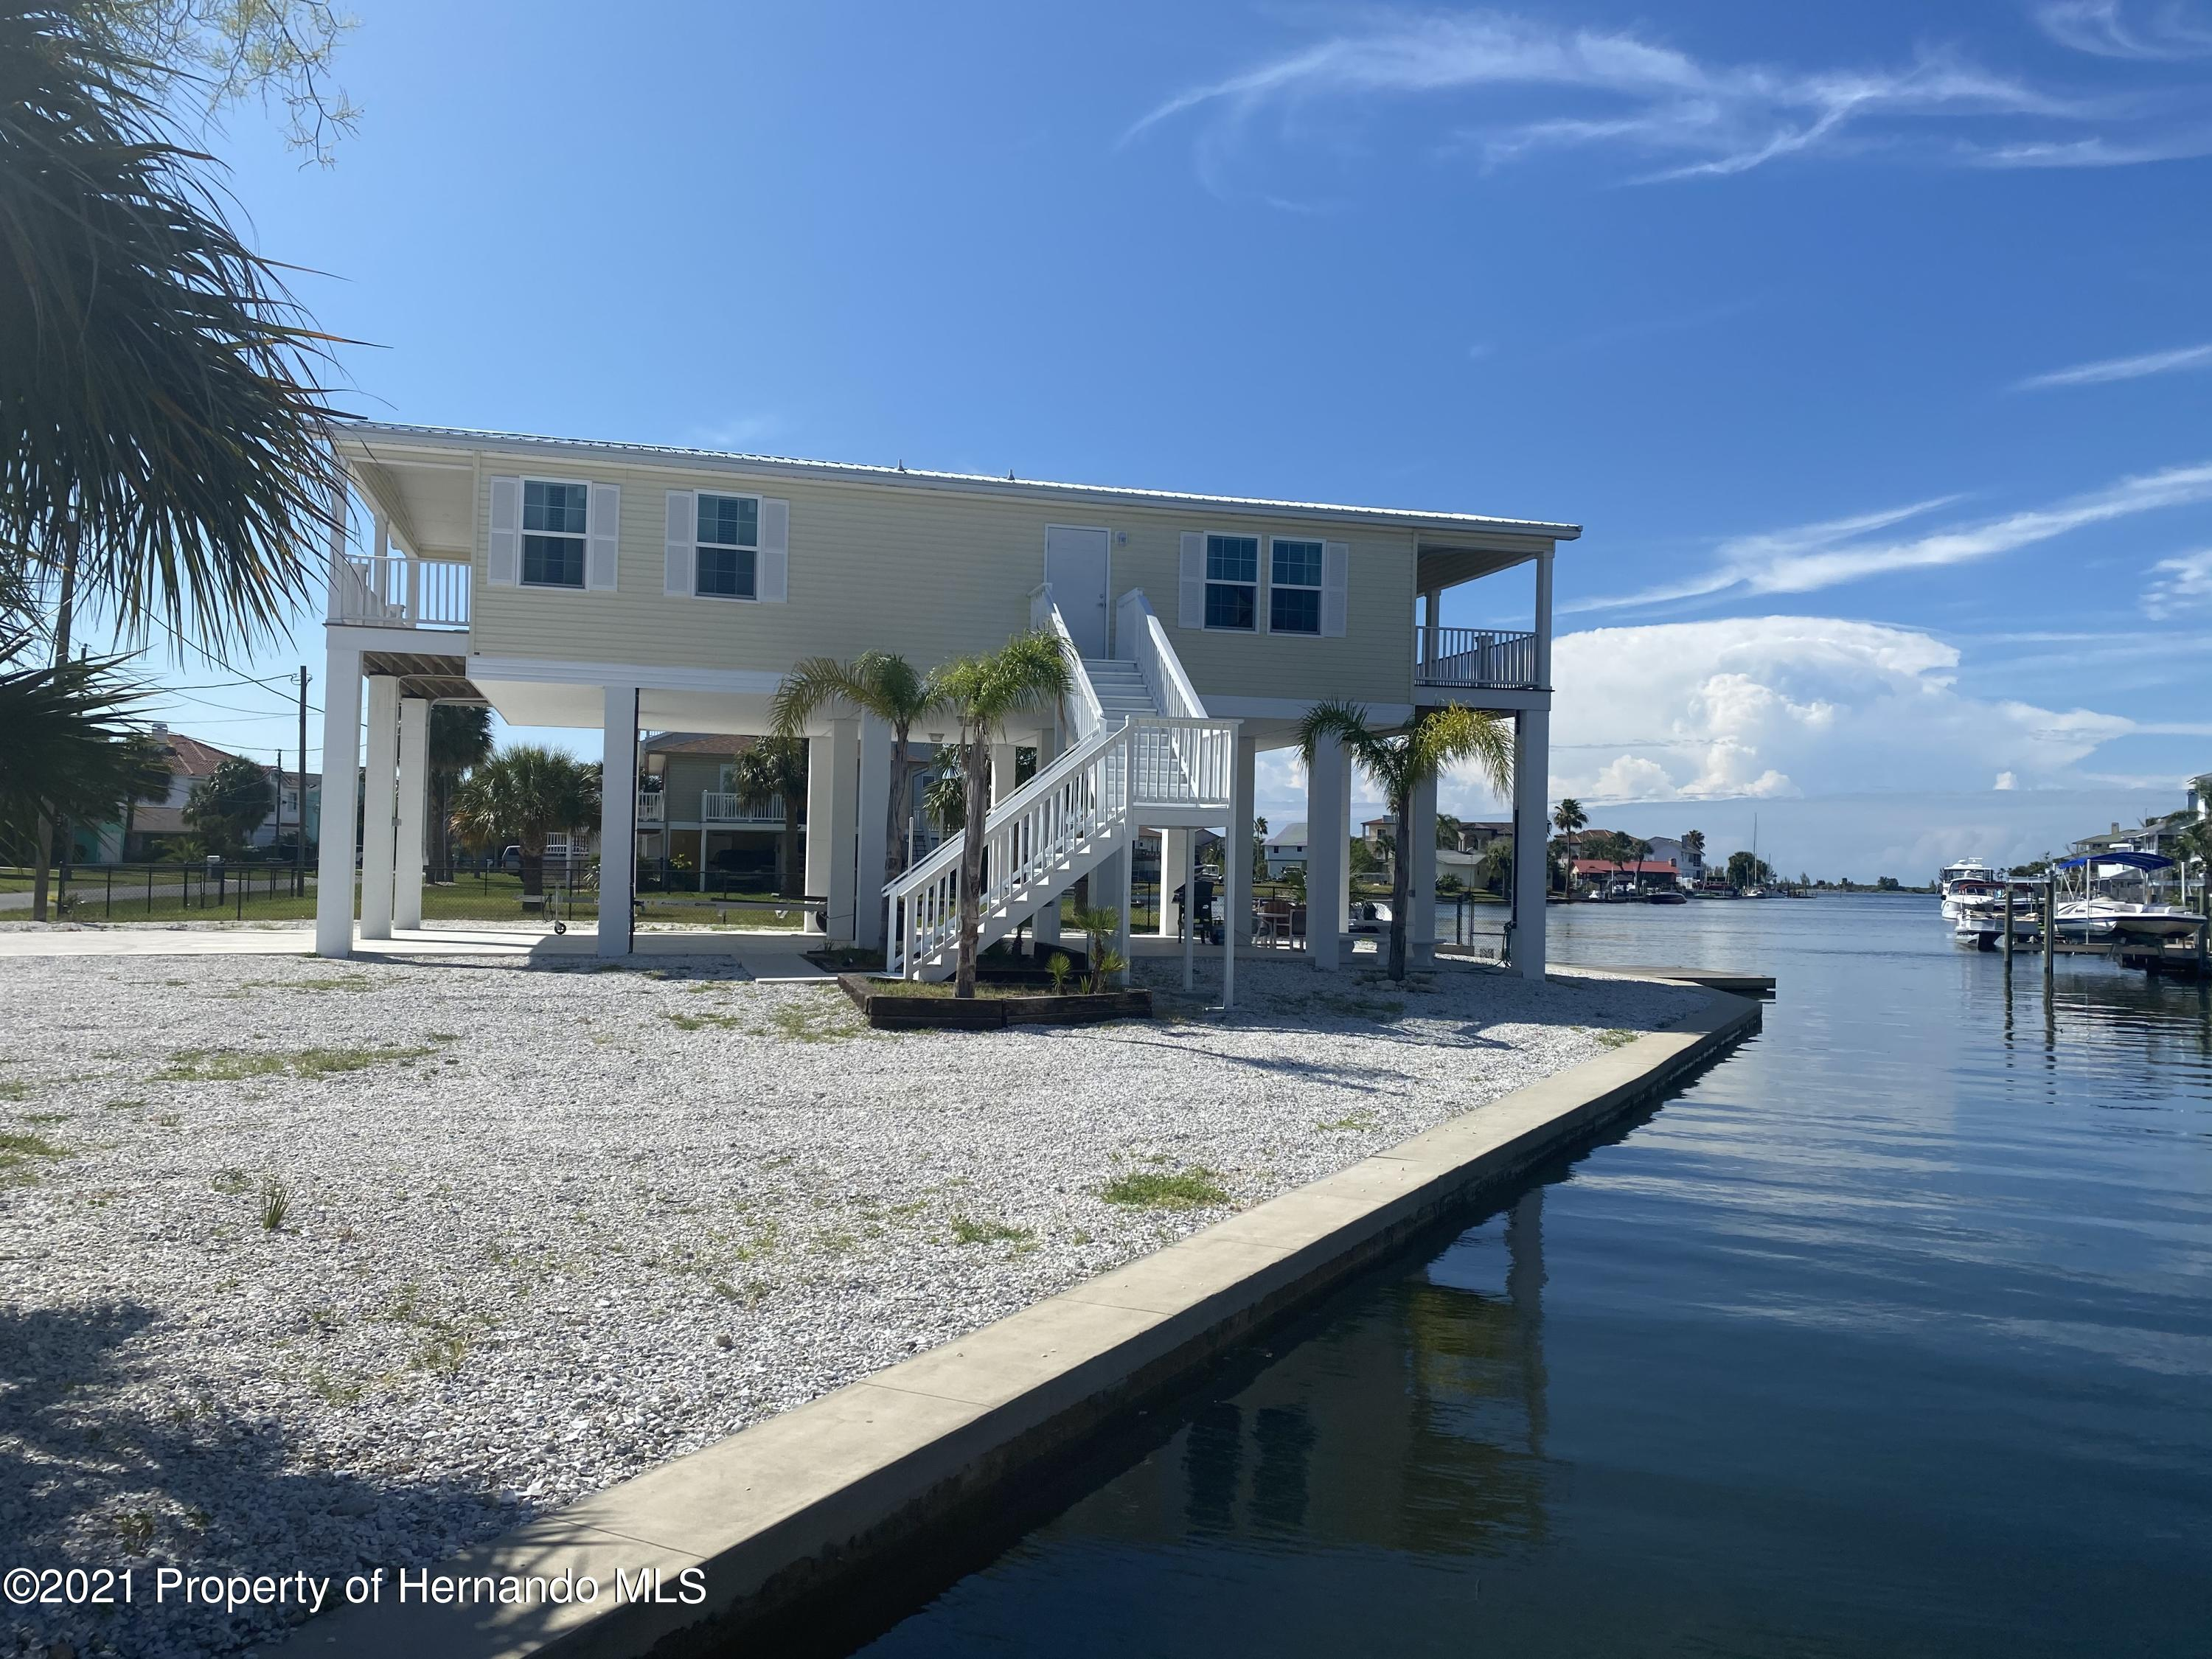 Details for 3229 Gulf Winds Circle, Hernando Beach, FL 34607